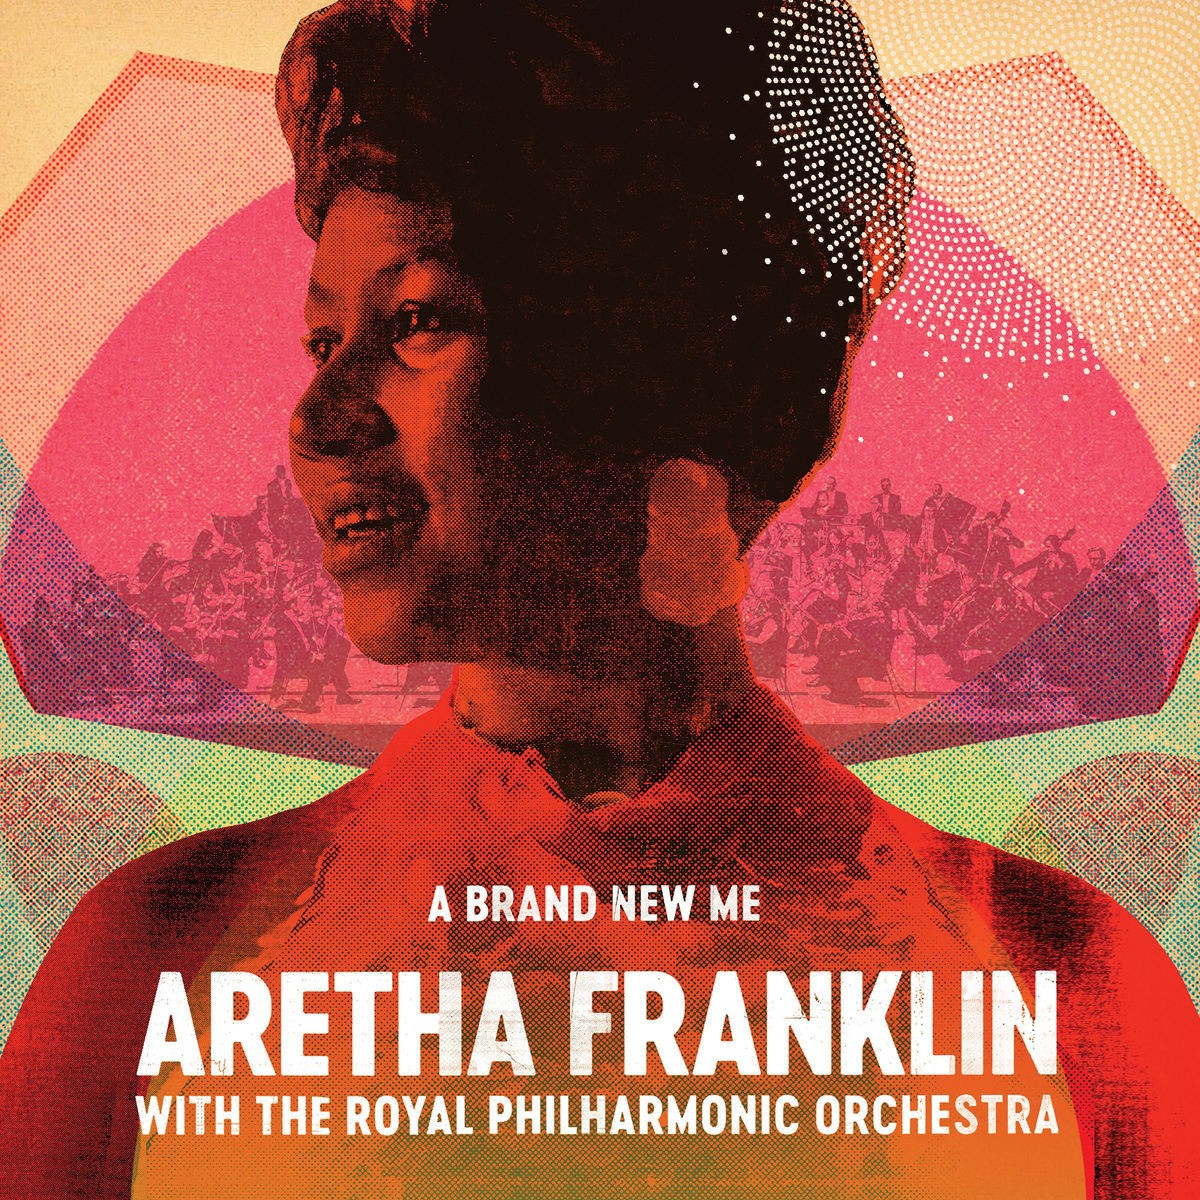 Aretha Franklin With The Royal Philharmonic Orchestra - Brand New Me CD - CDESP 471